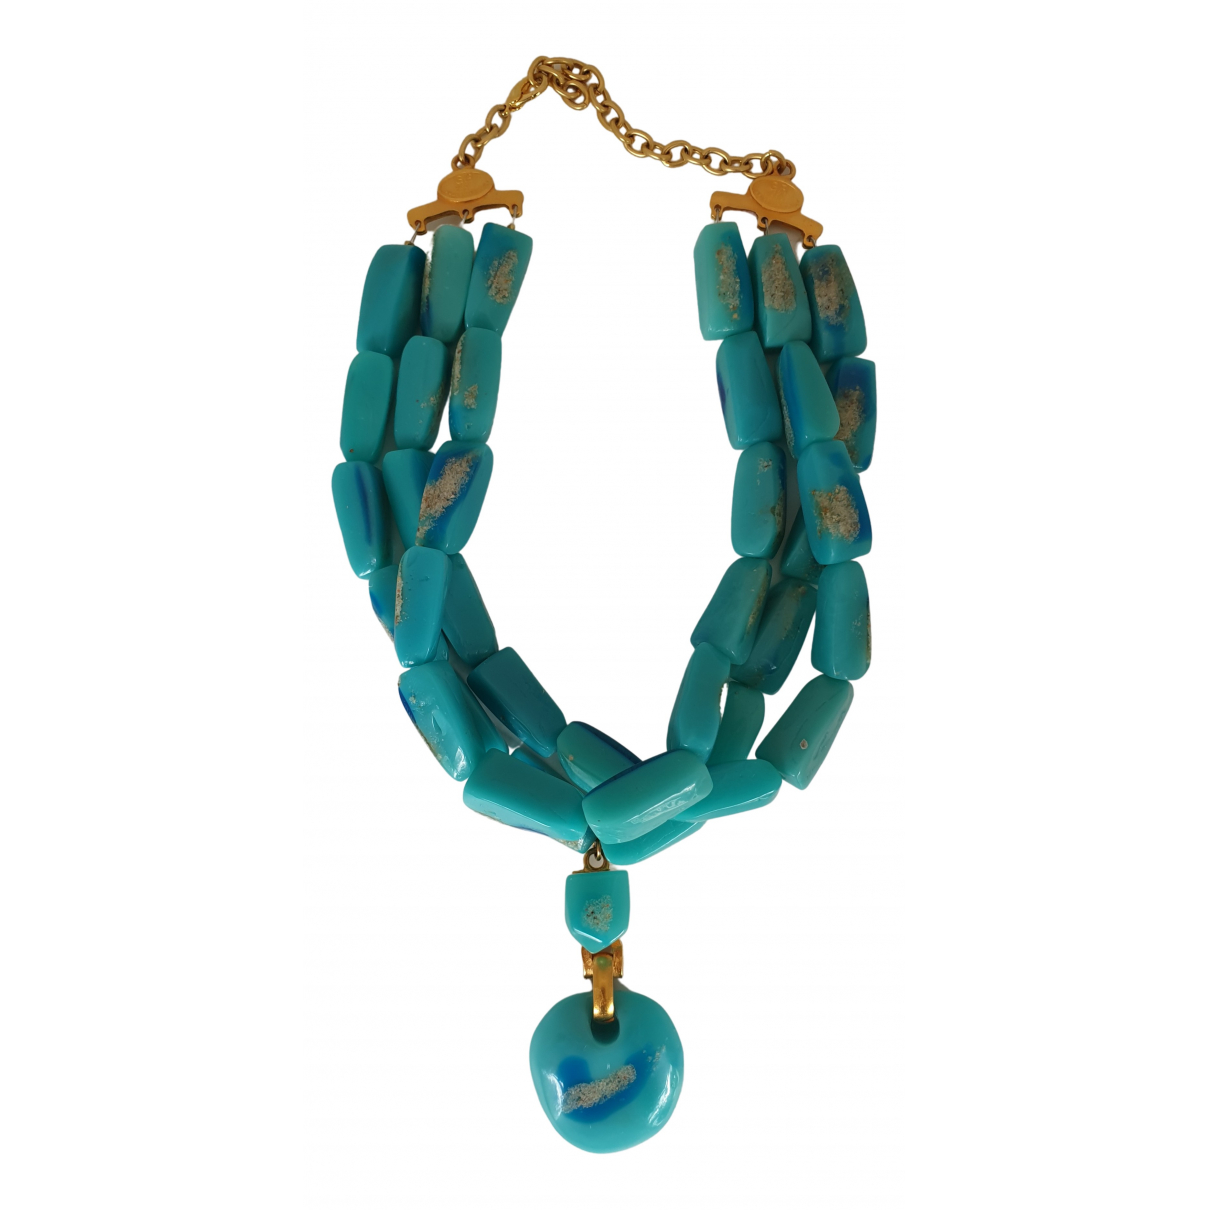 Georges Rech \N Turquoise Metal necklace for Women \N